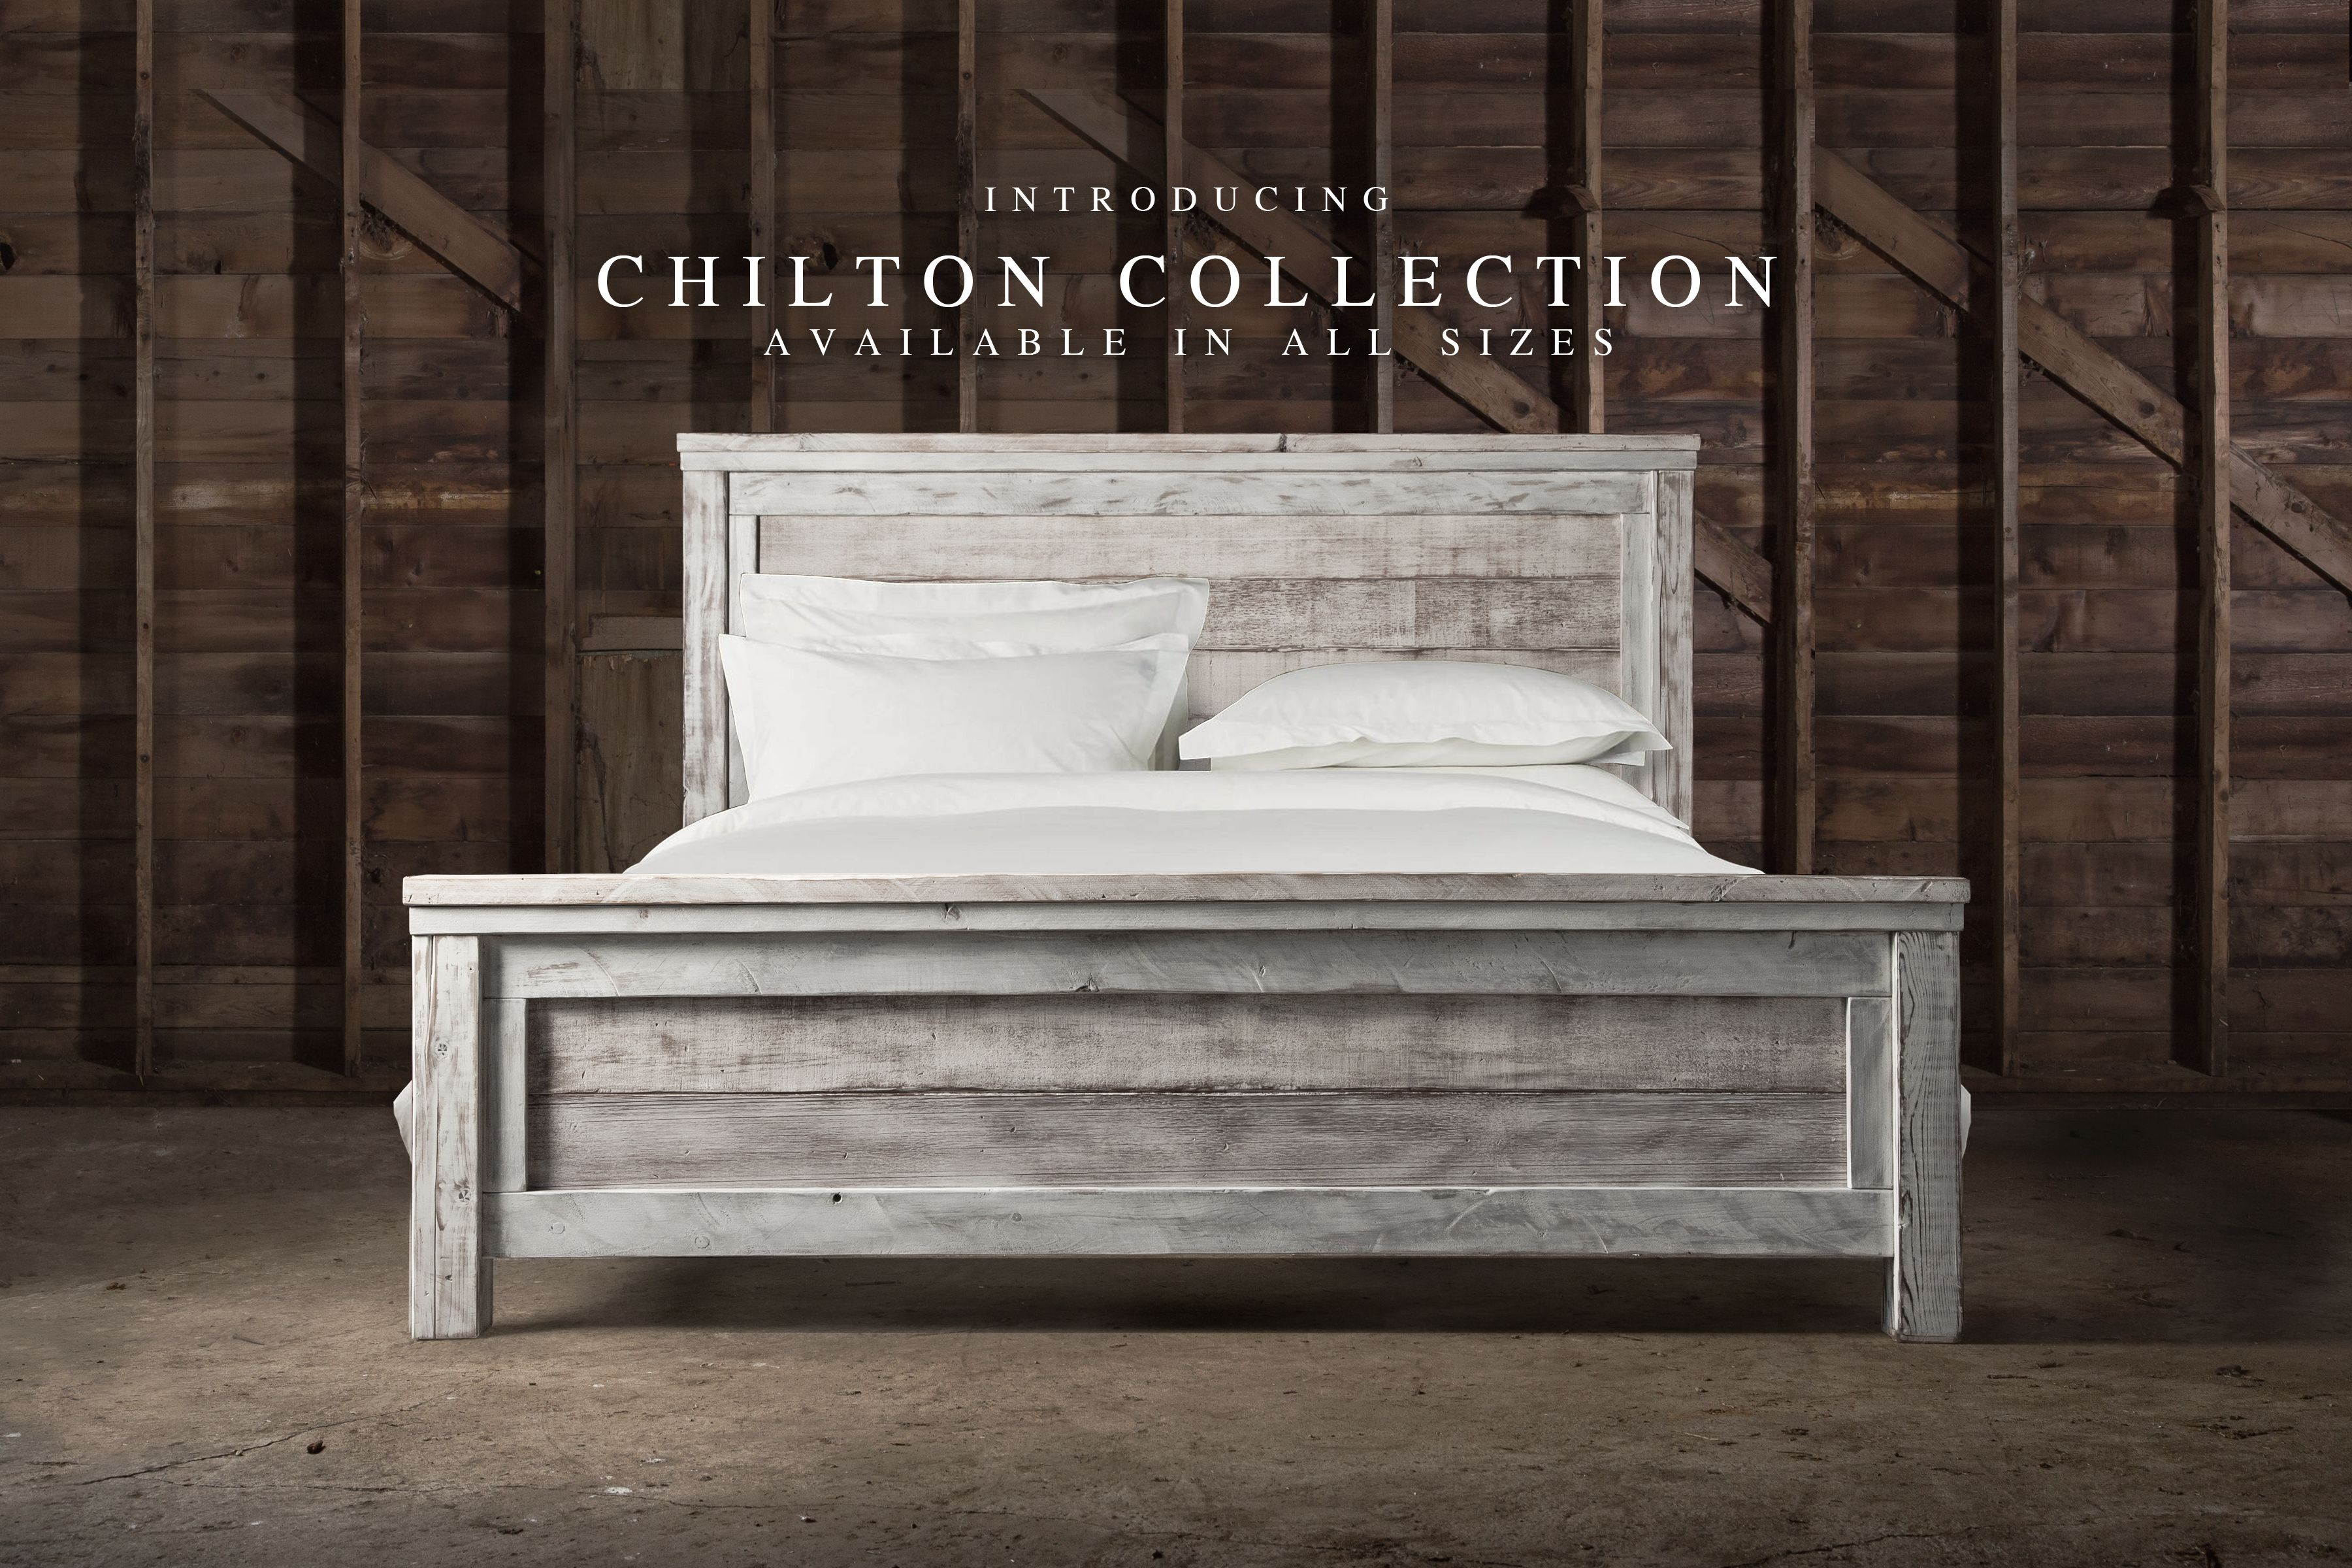 Our Reclaimed Chilton Bed. This rustic farm bed is